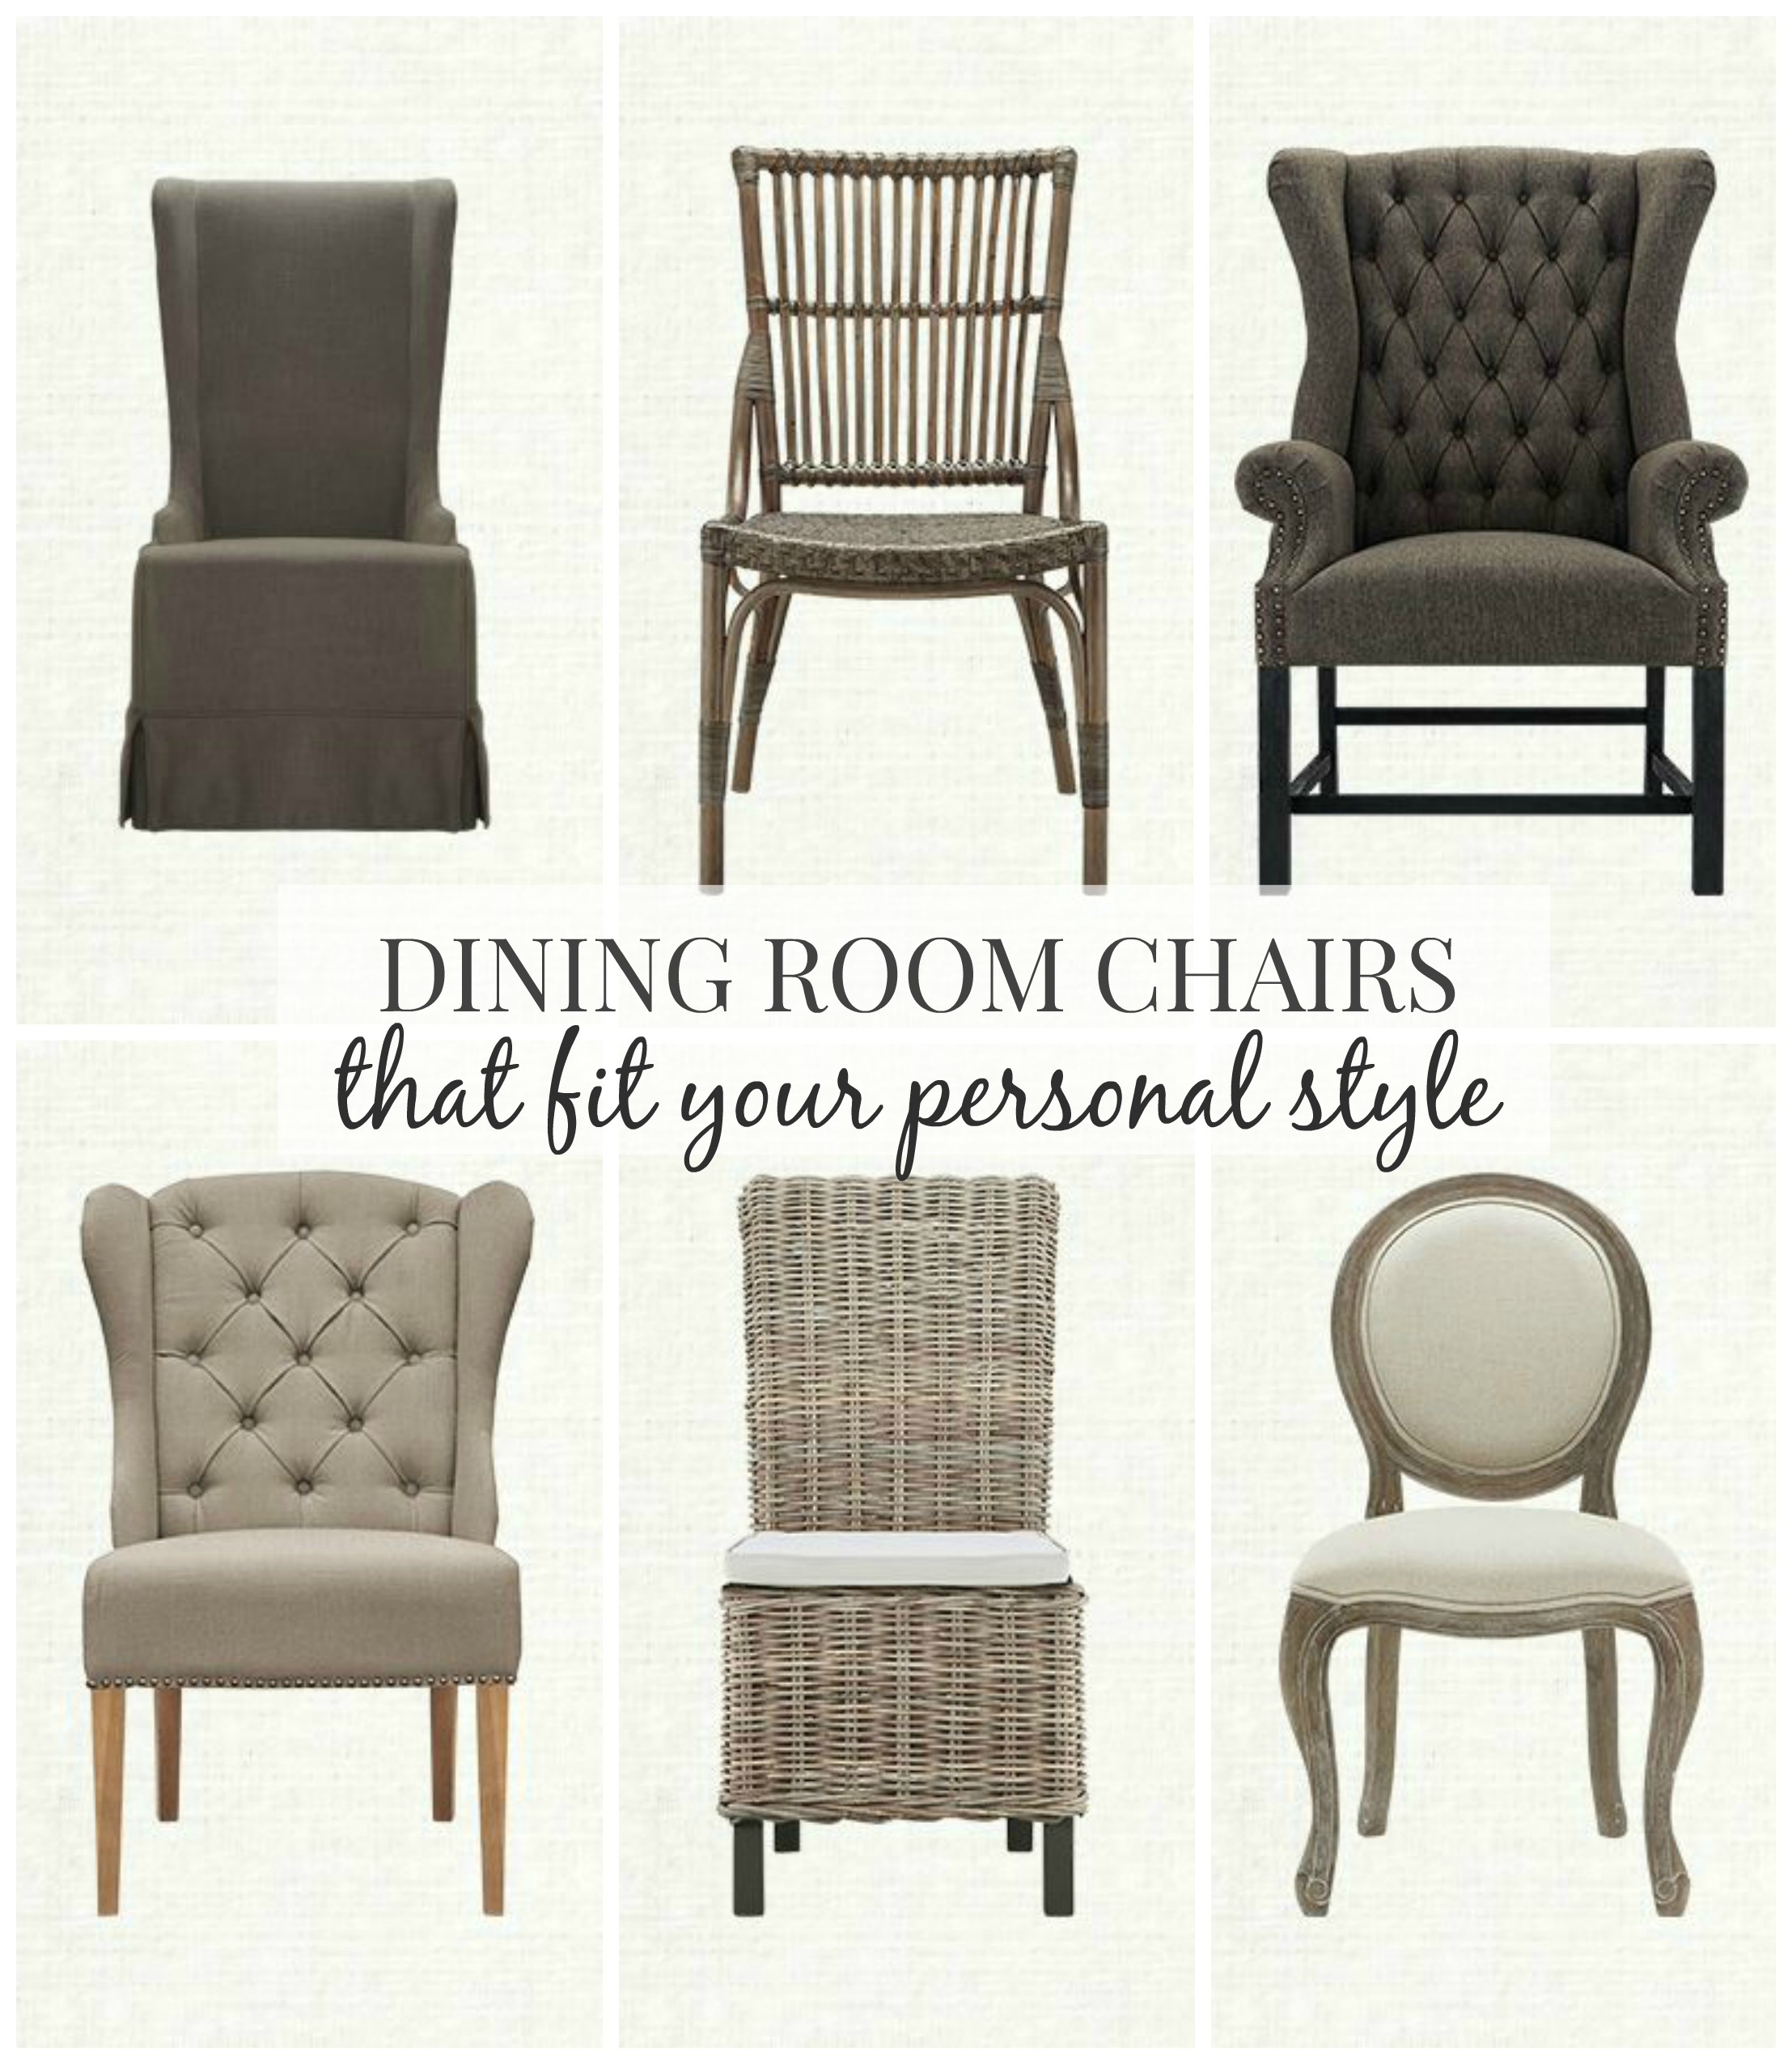 Dining Room Chairs That Fit Your Personal Style